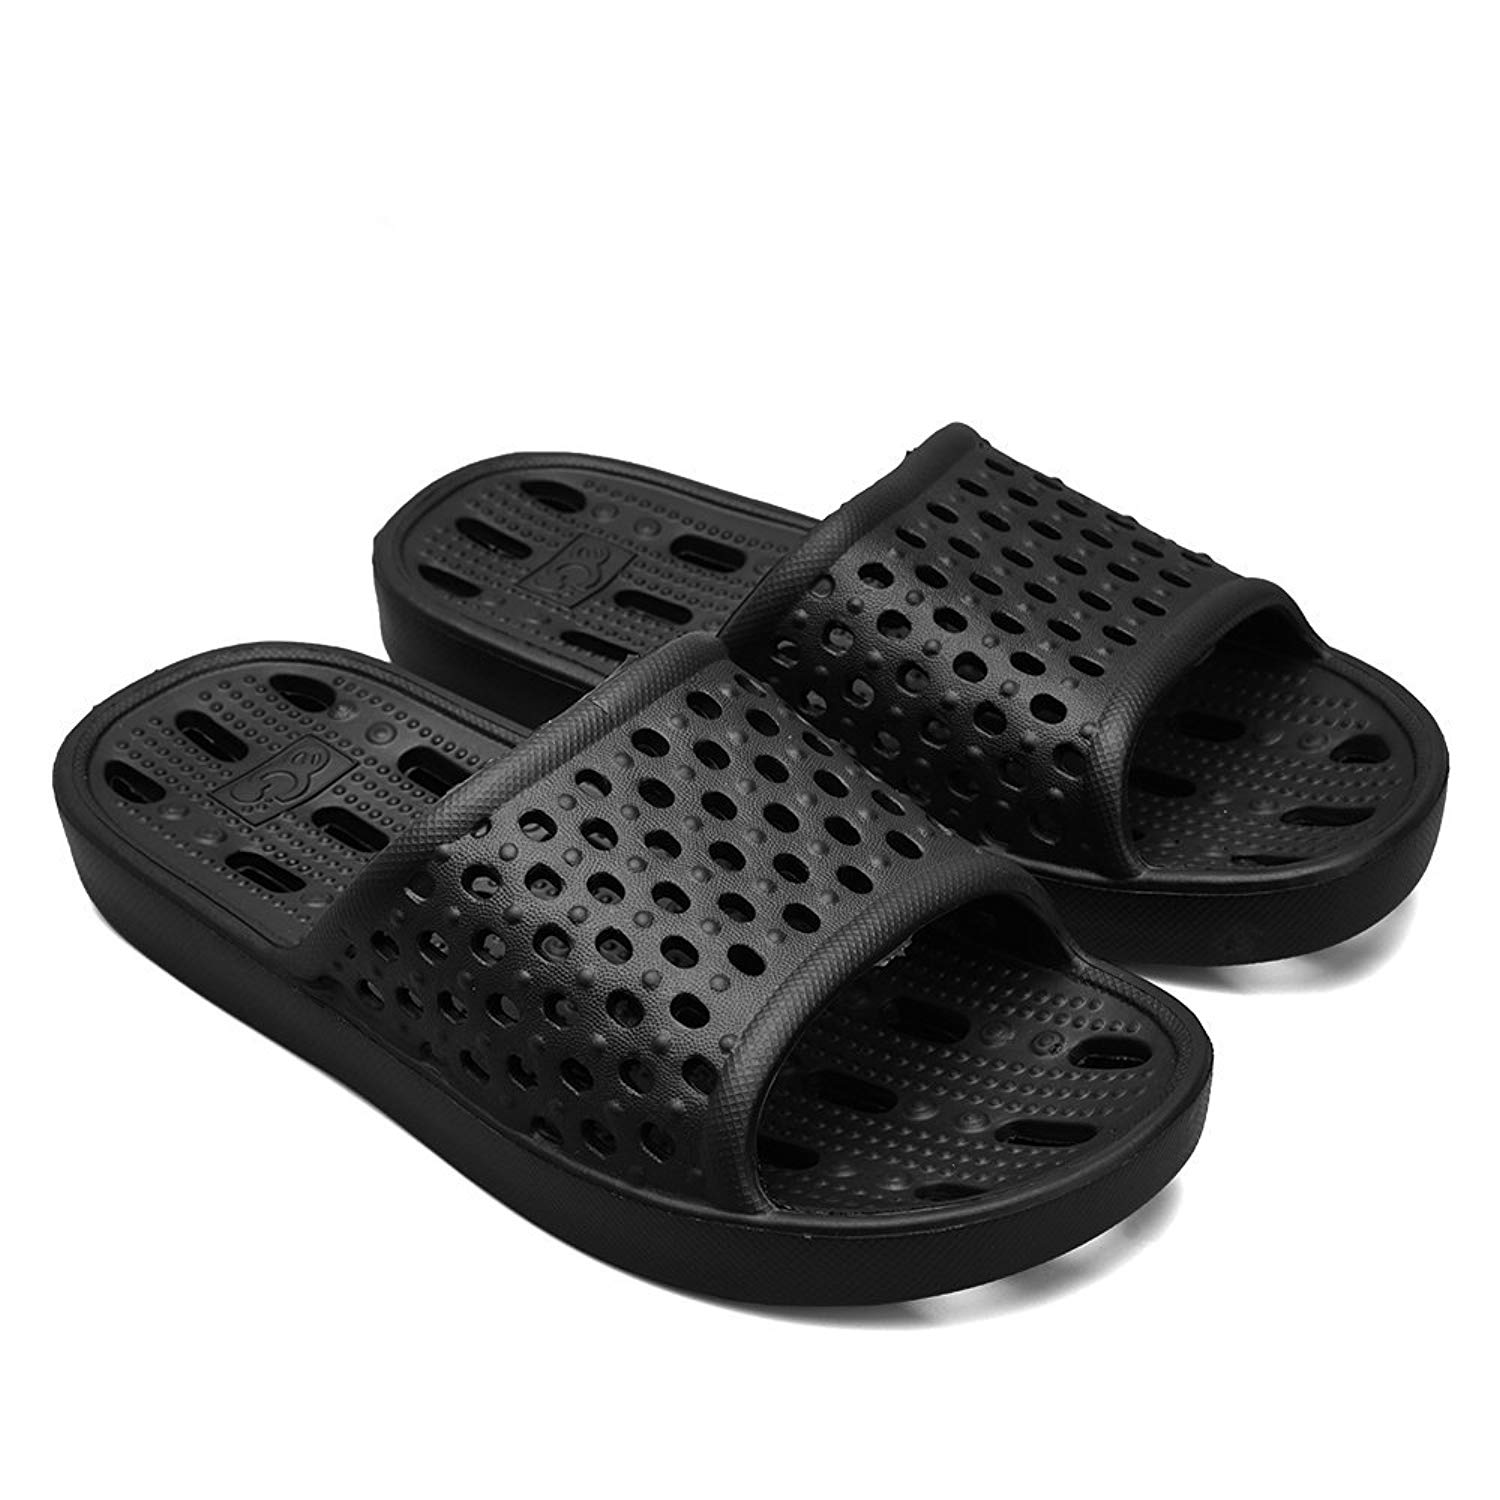 72c1d4ae Get Quotations · Qiucdzi Bath Slippers Women and Men Summer Pool Shower  Shoes Breathable Non Slip Indoor House Sandals